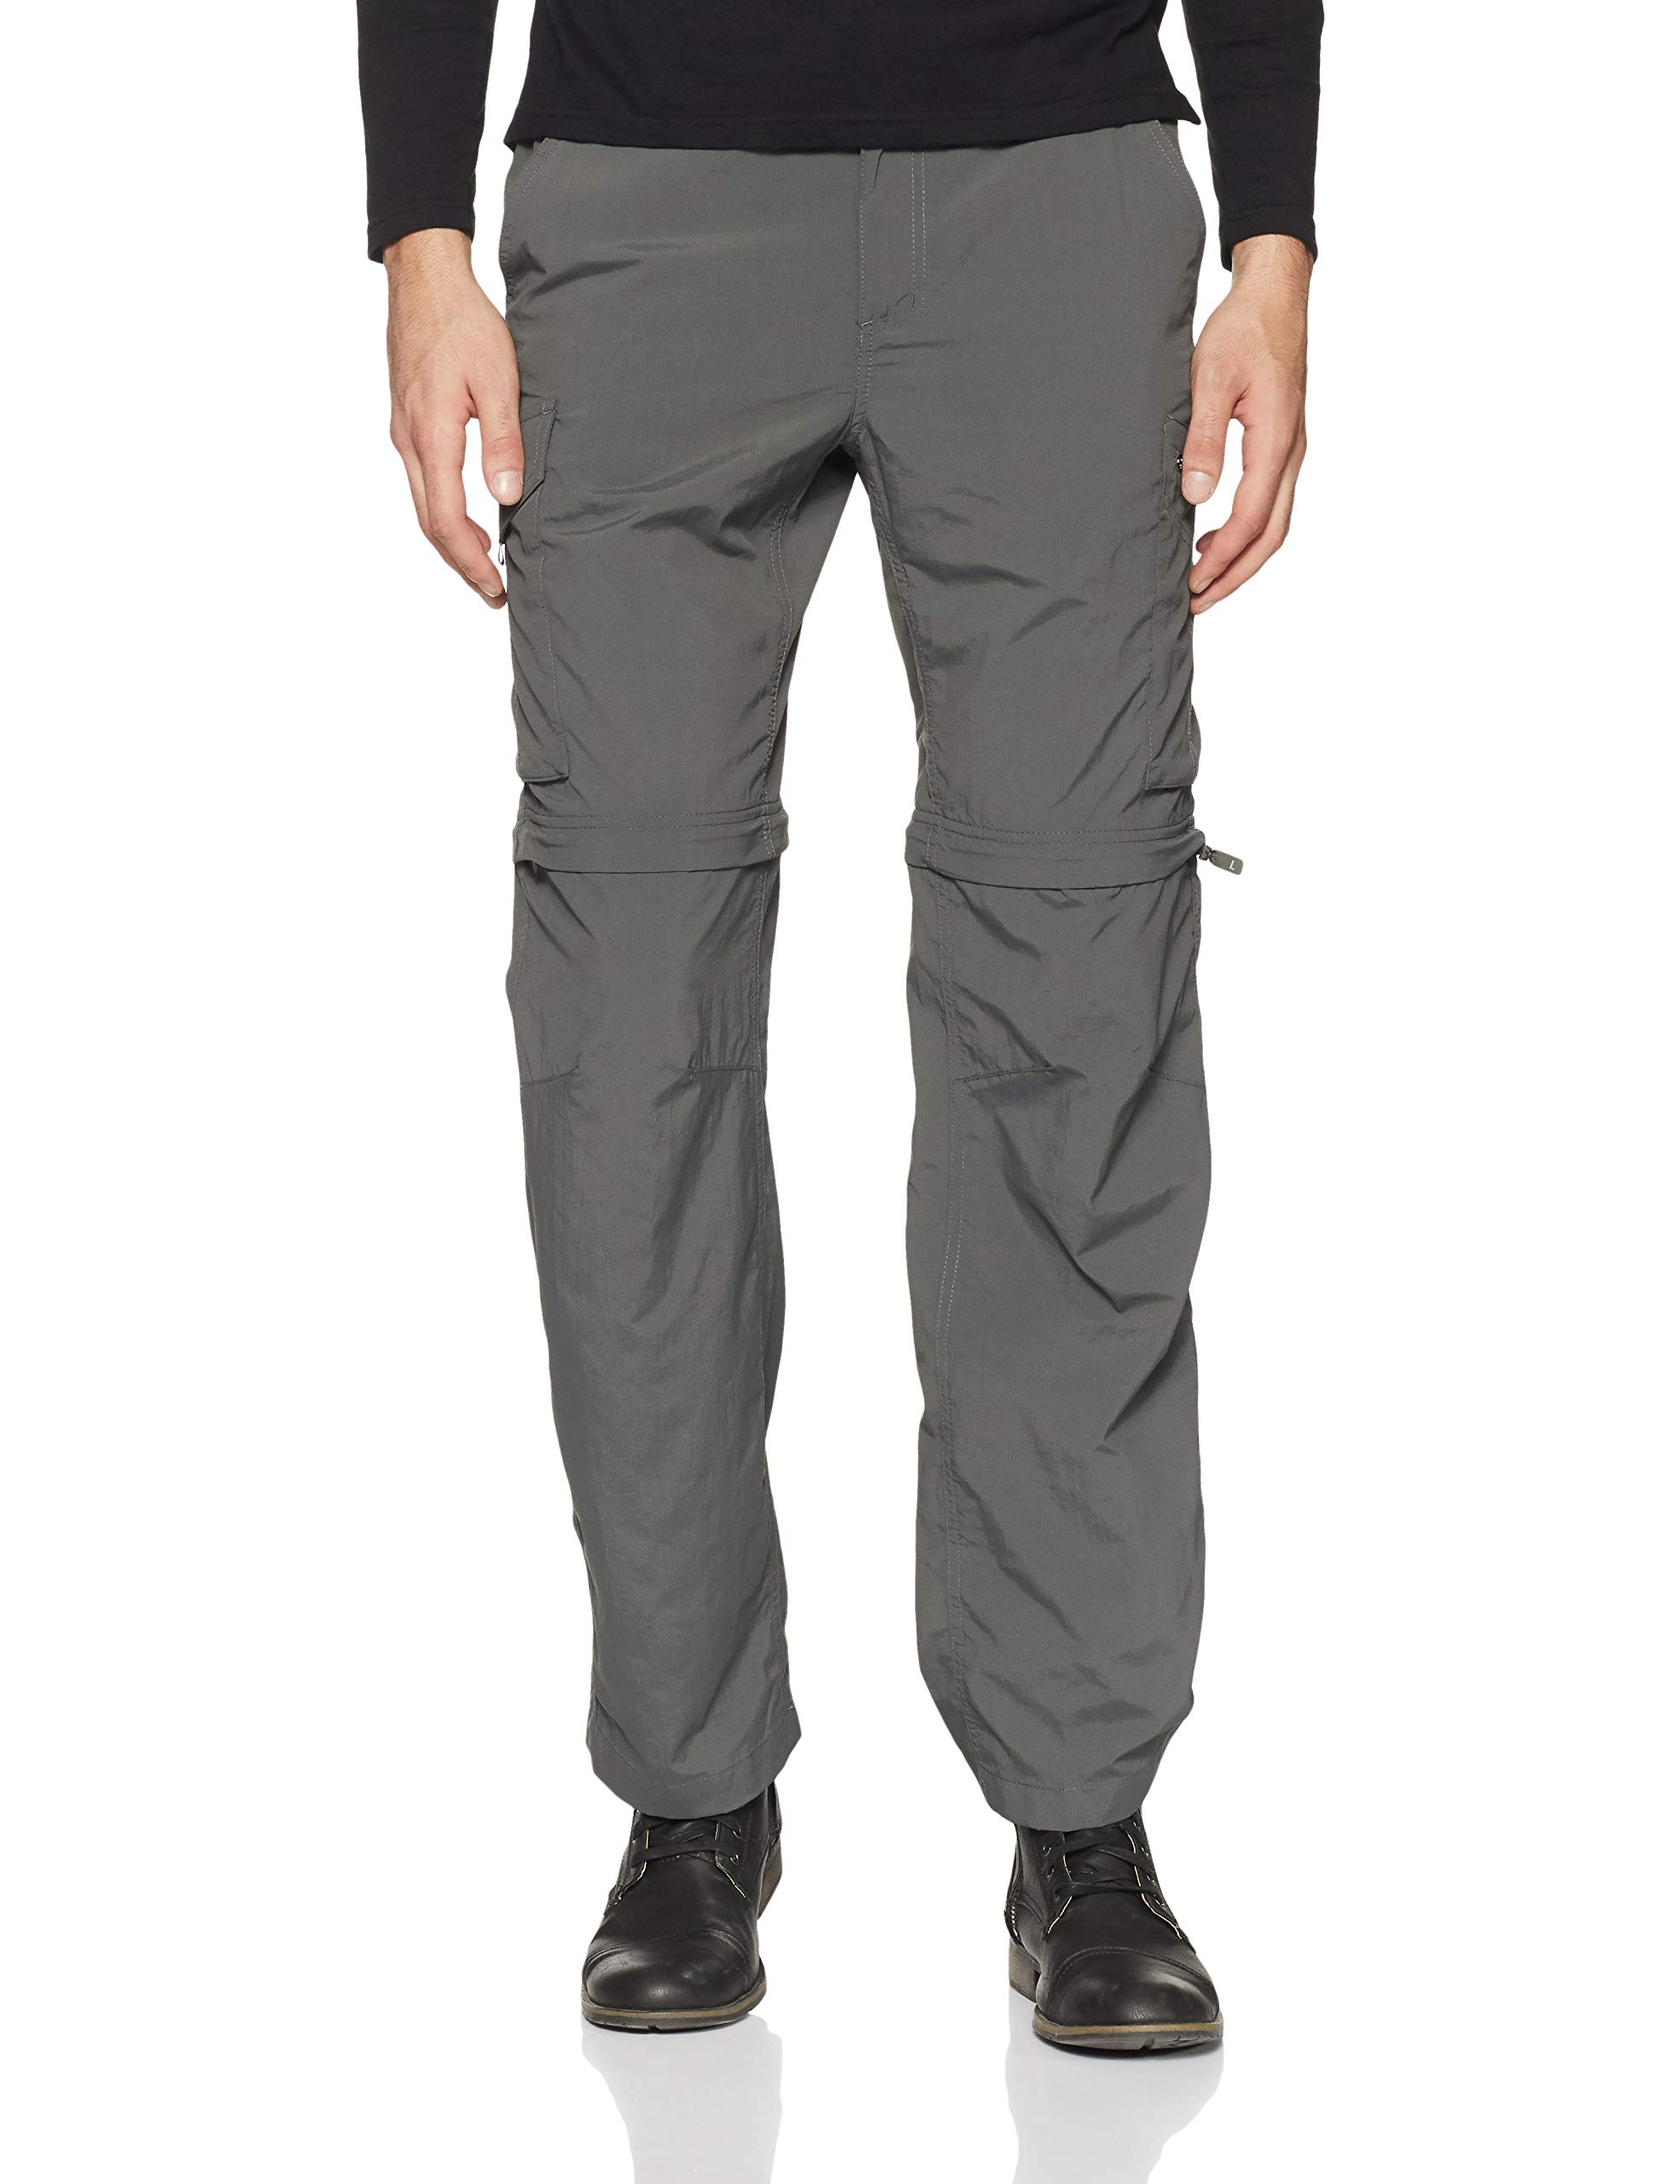 Columbia Men's Silver Ridge Convertible Pants, Grill, 32x36